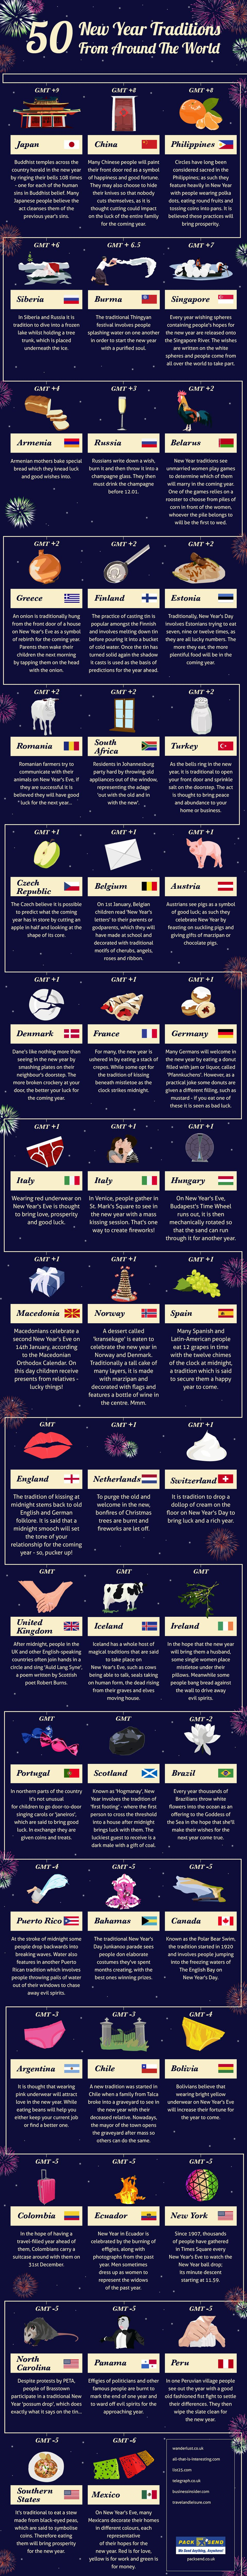 Cultural and Historical New Year Traditions from around the World